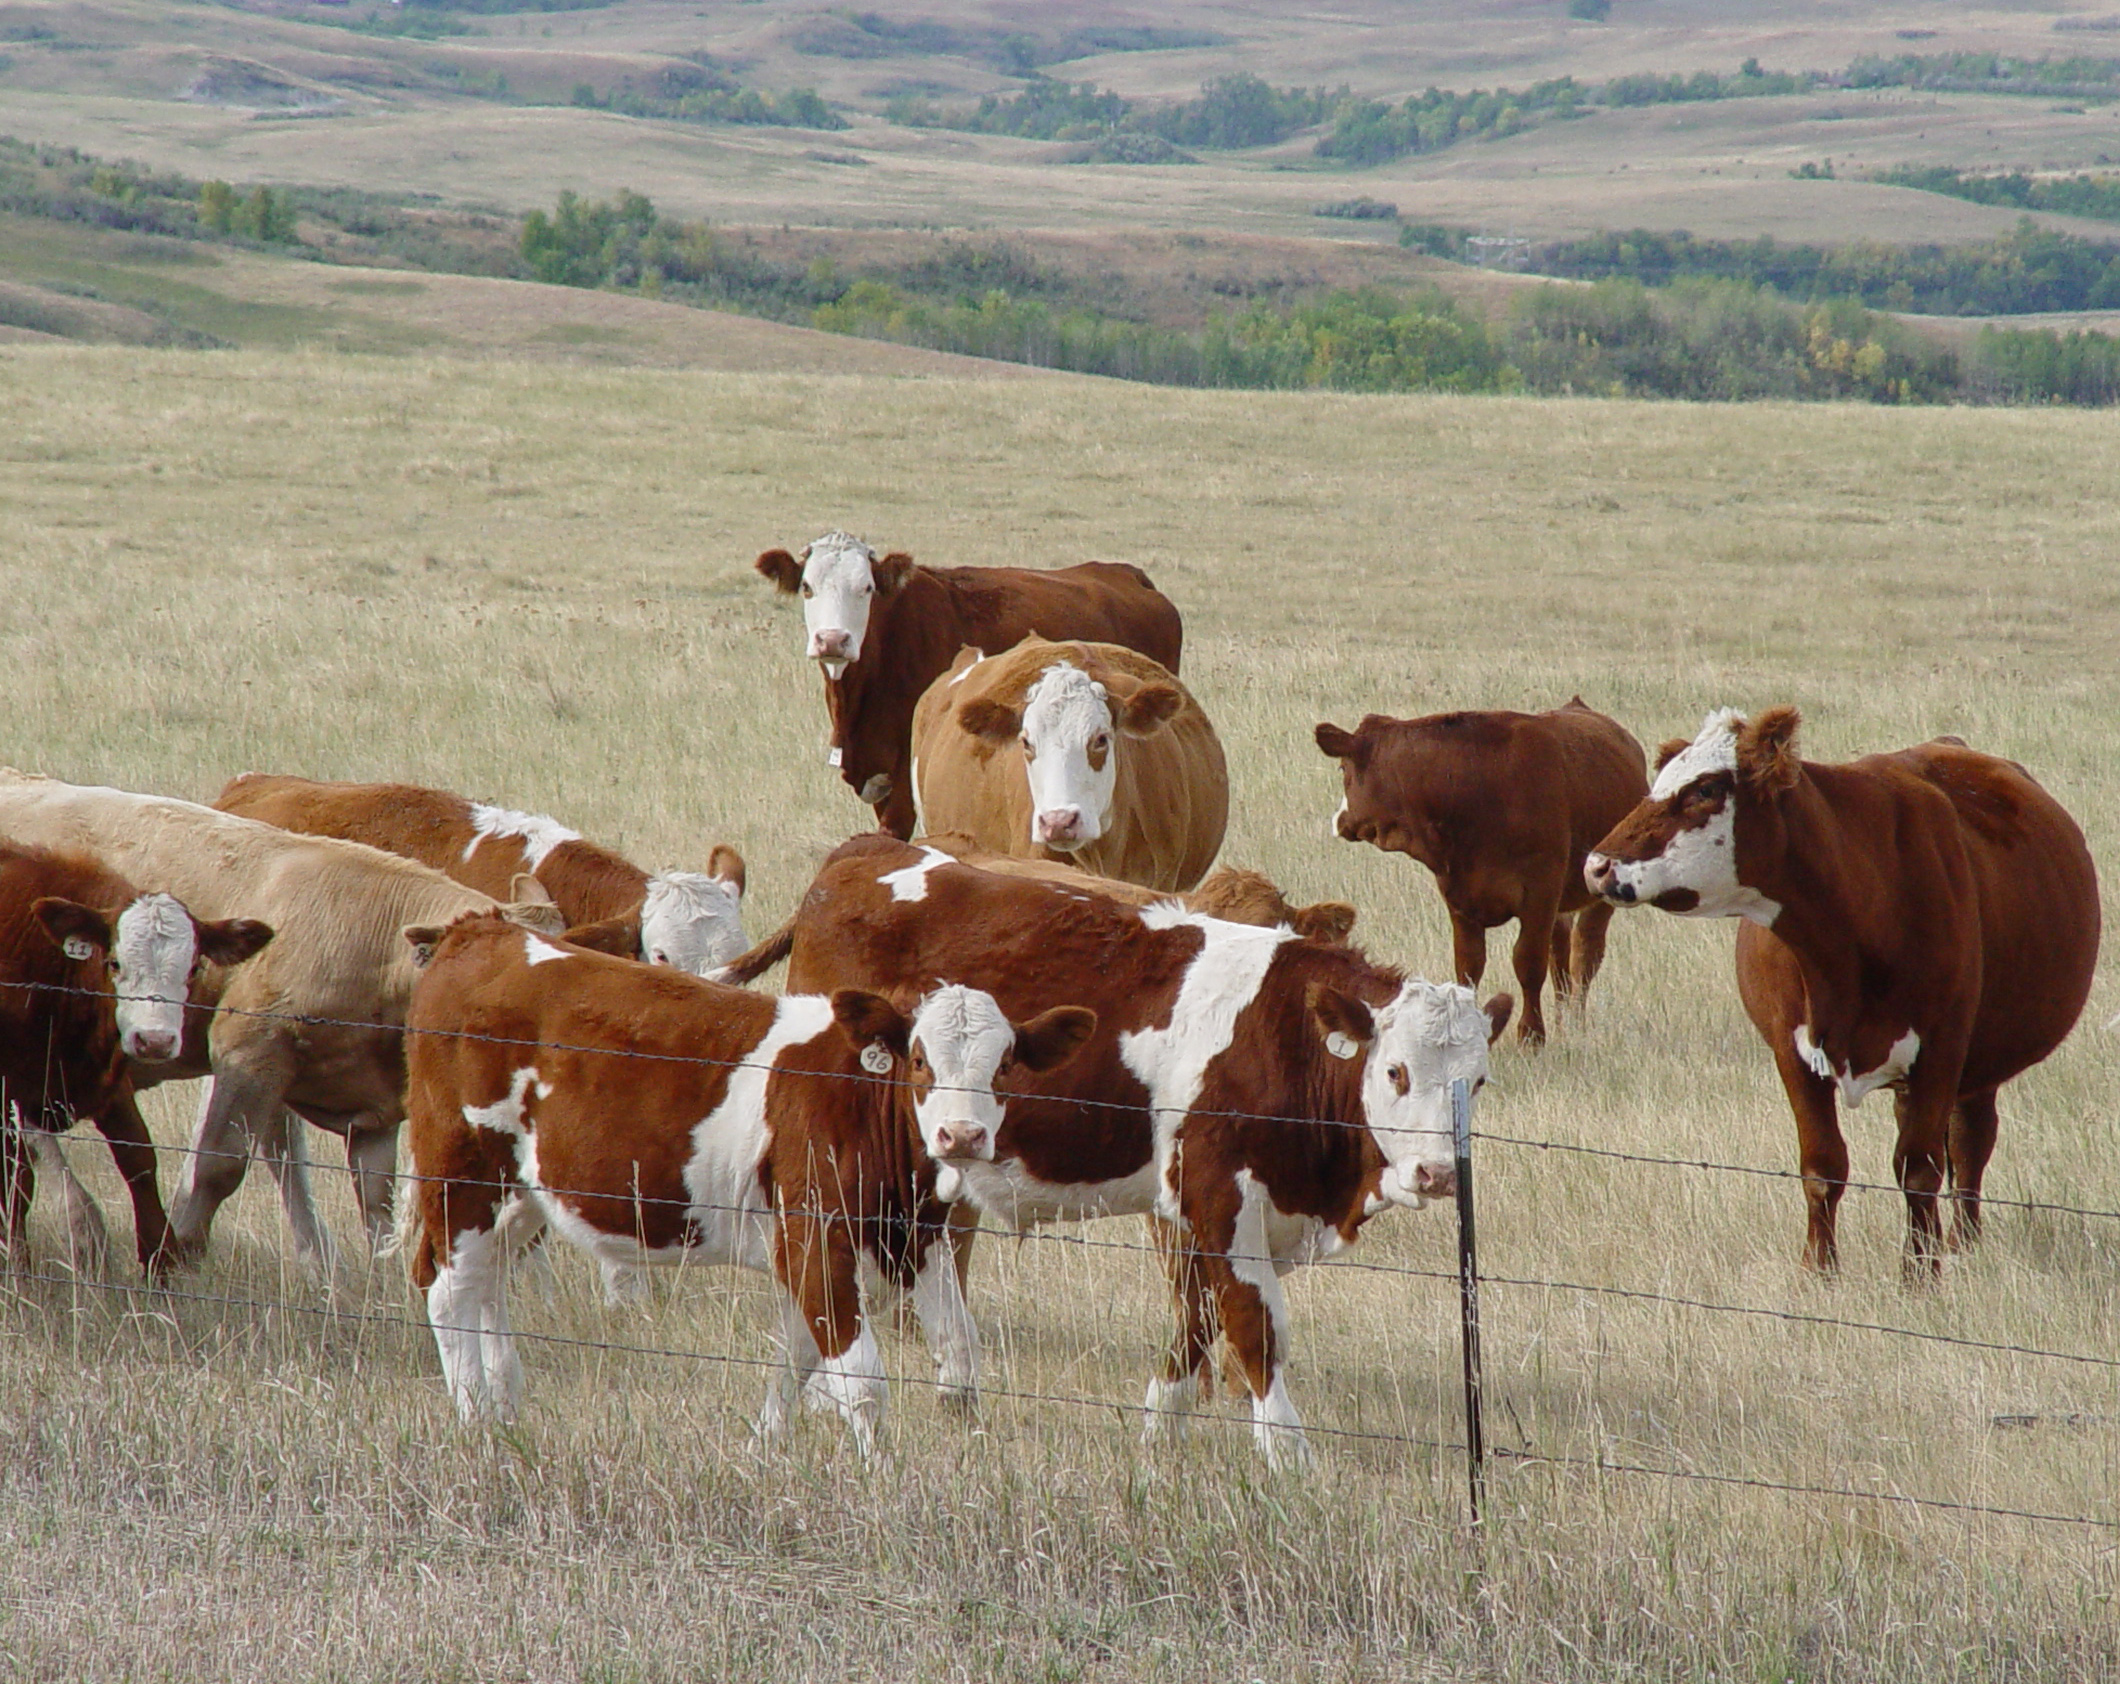 Beef cattle graze in dry pasture